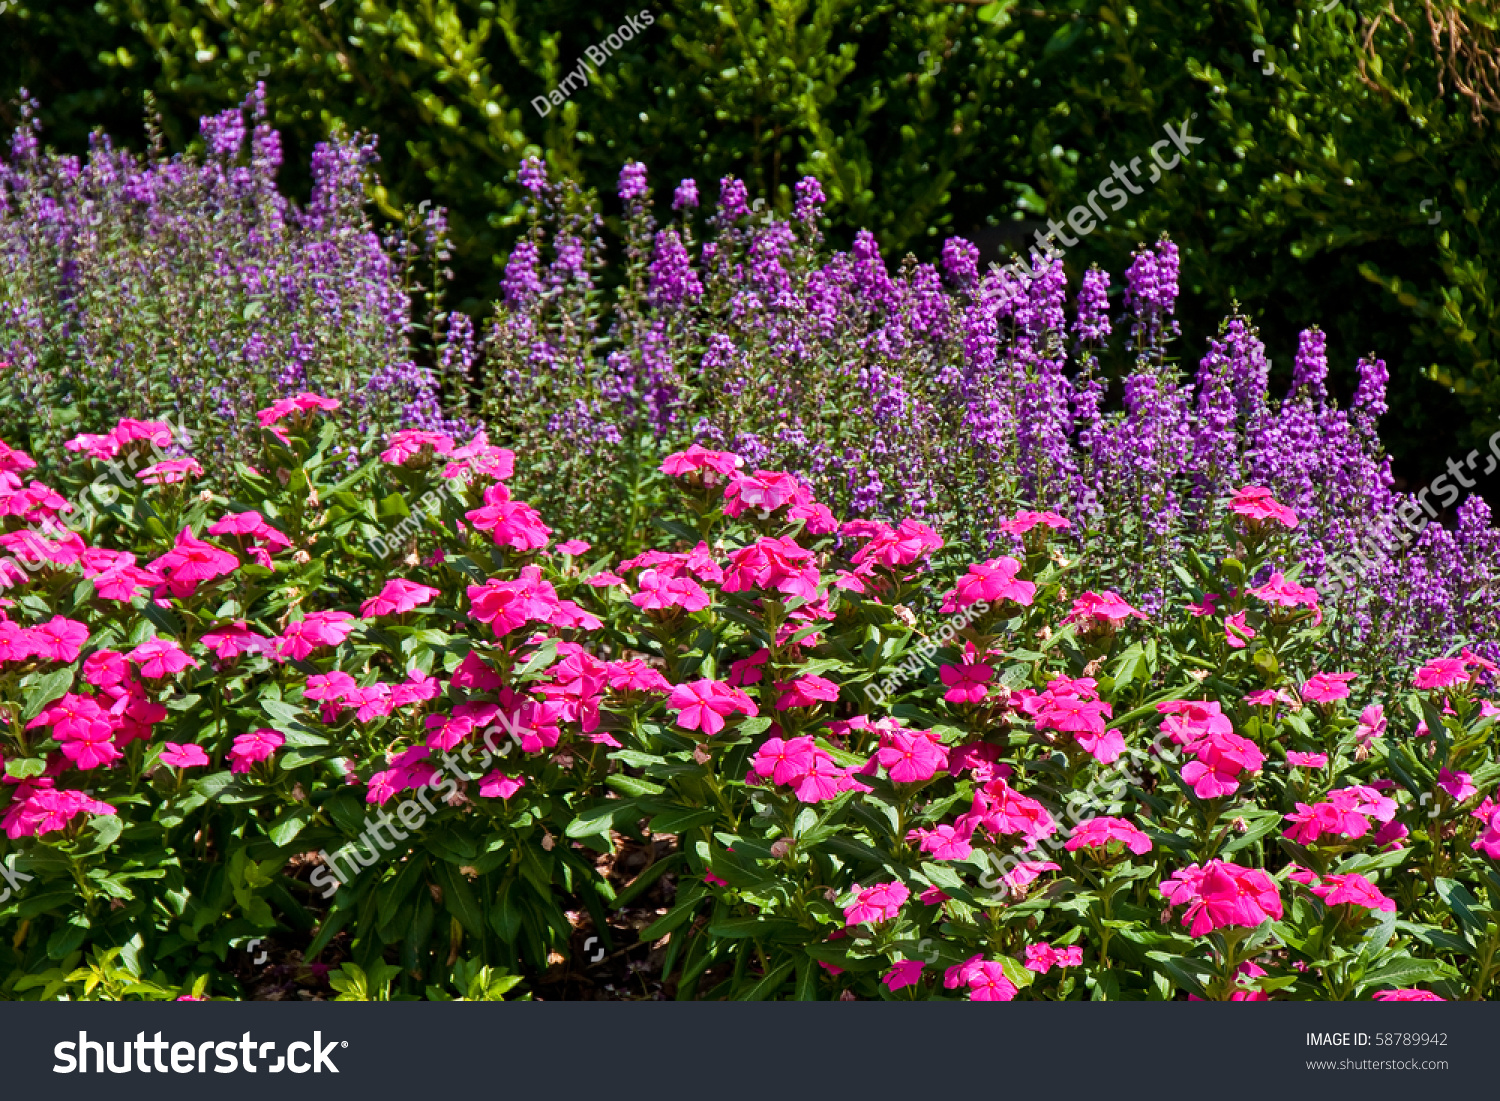 Formal garden planted pink purple flowers stock photo 58789942 shutterstock - Flowers planted may complete garden ...